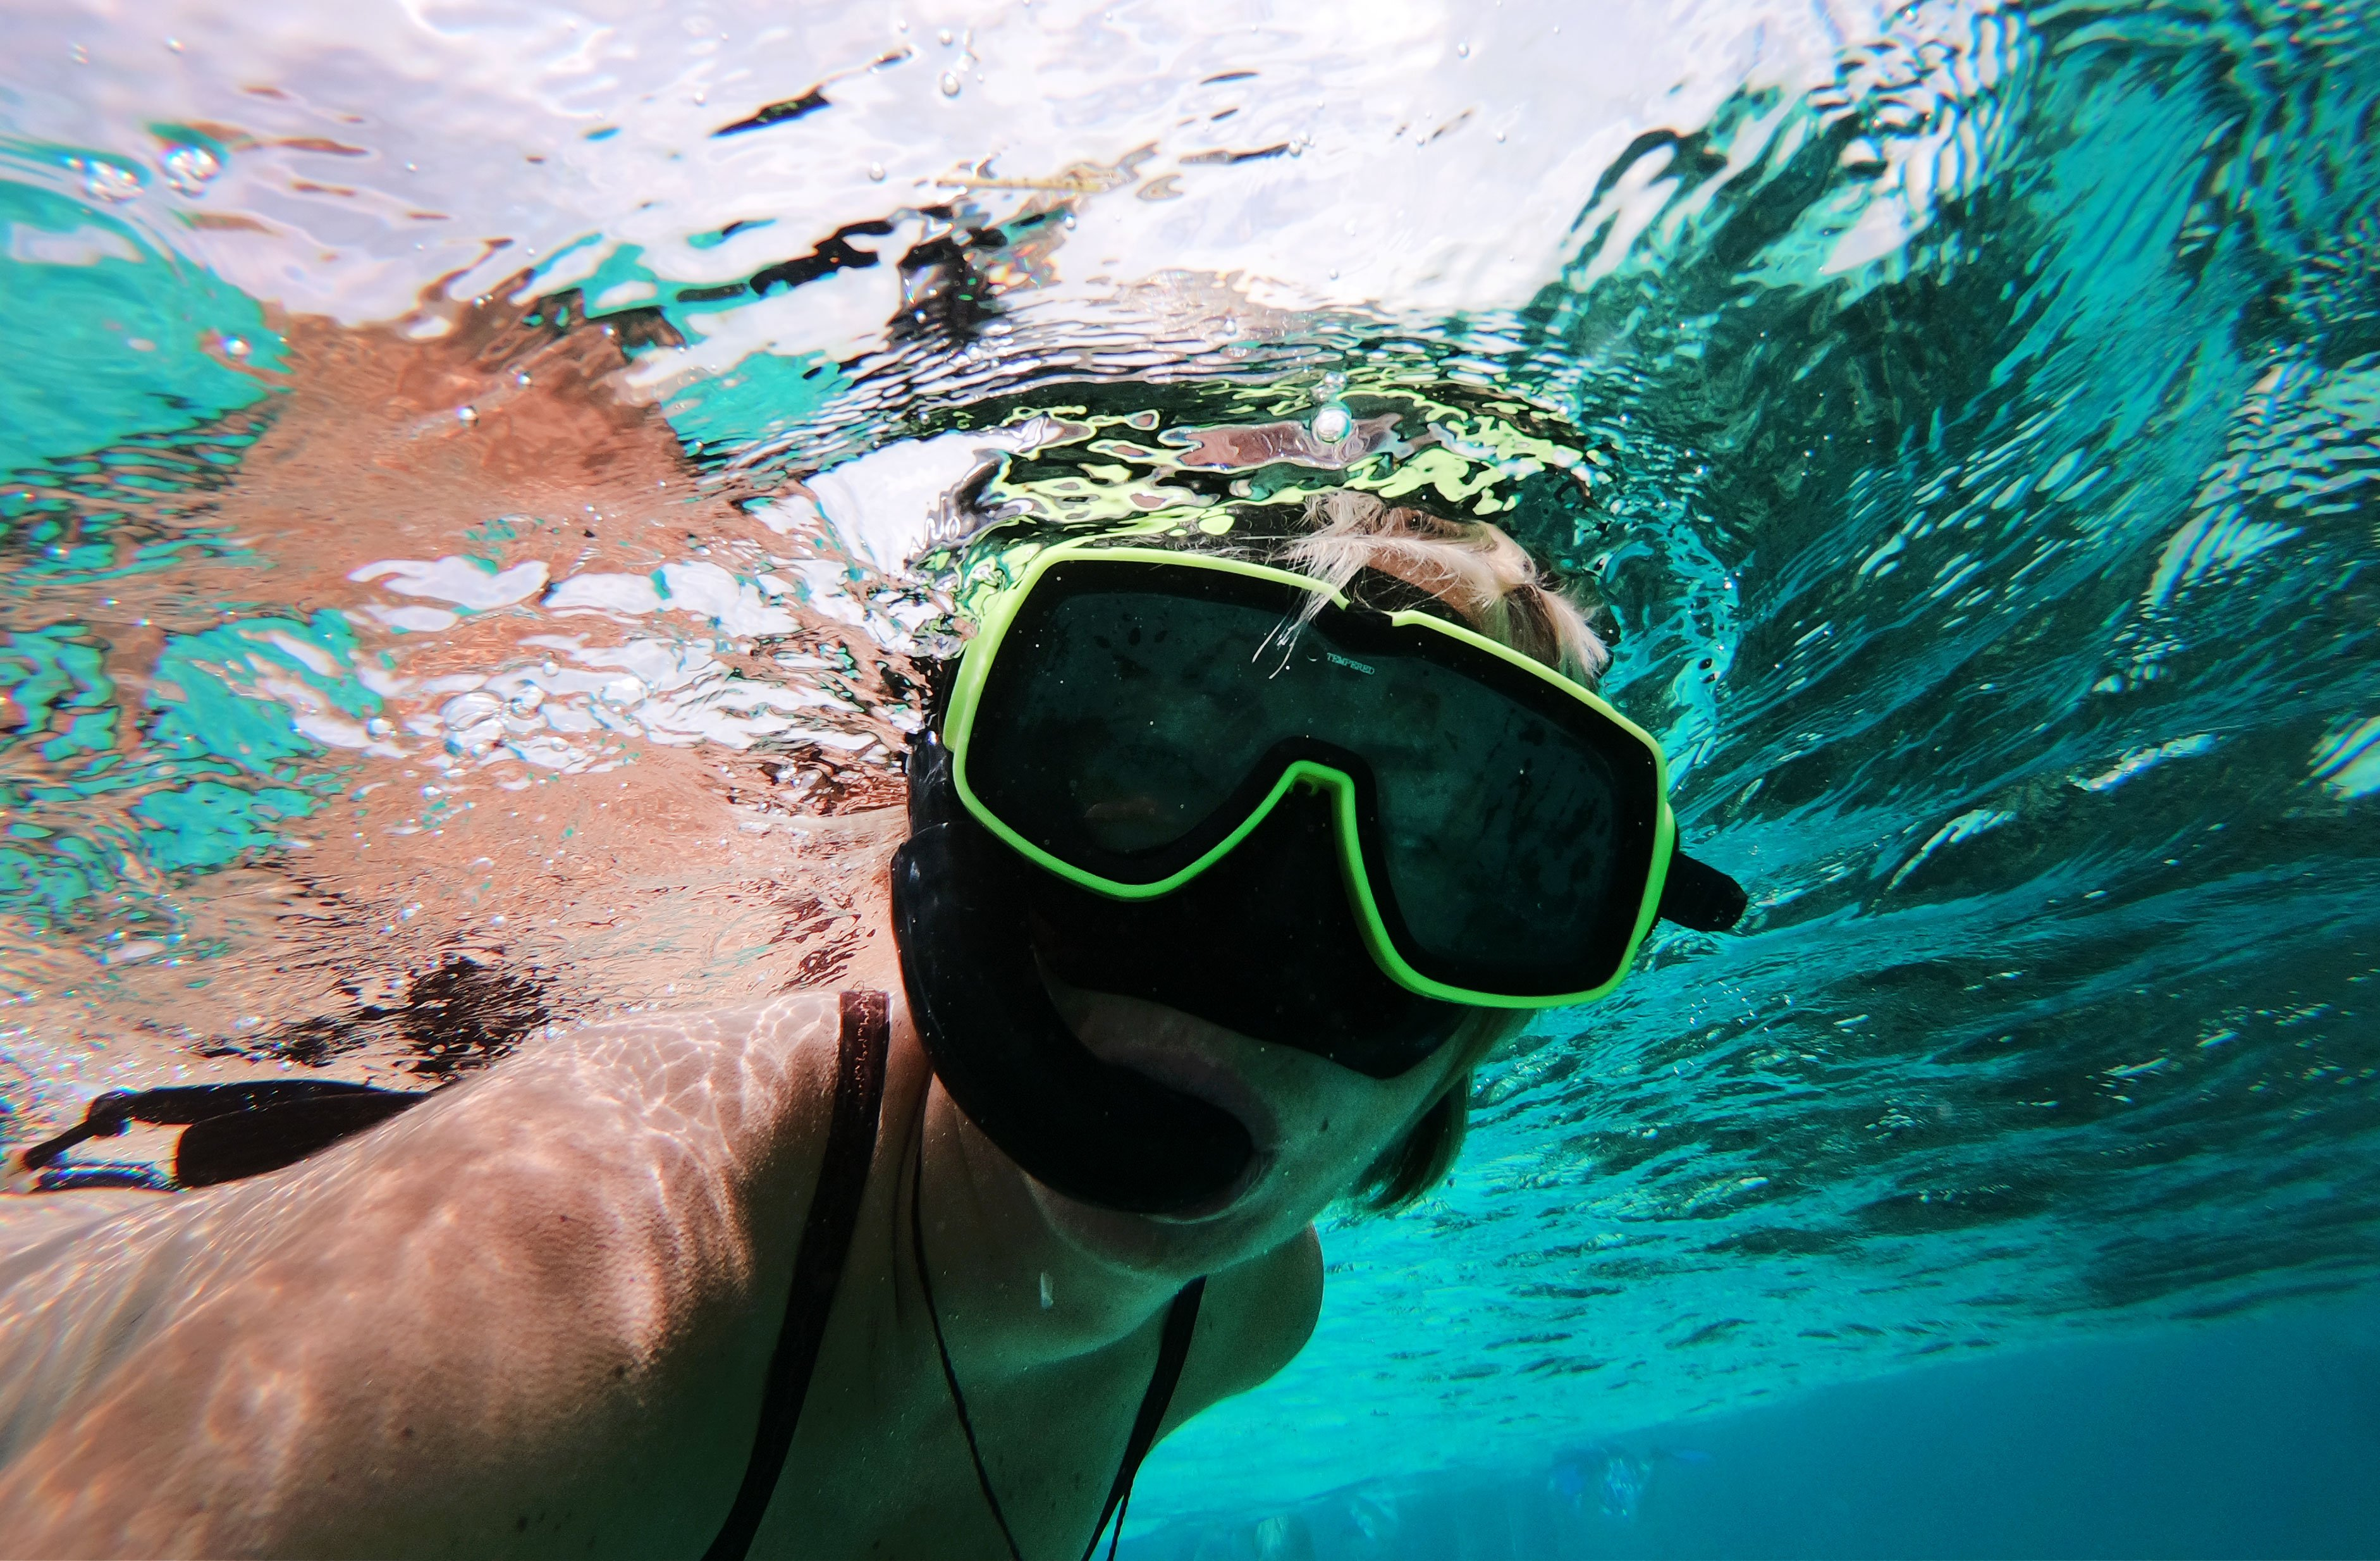 Suewherewhywhat, underwater snorkelling, Grand Cayman. All You Need To Know About Housesitting in Grand Cayman. All You Need To Know About Housesitting in Grand Cayman